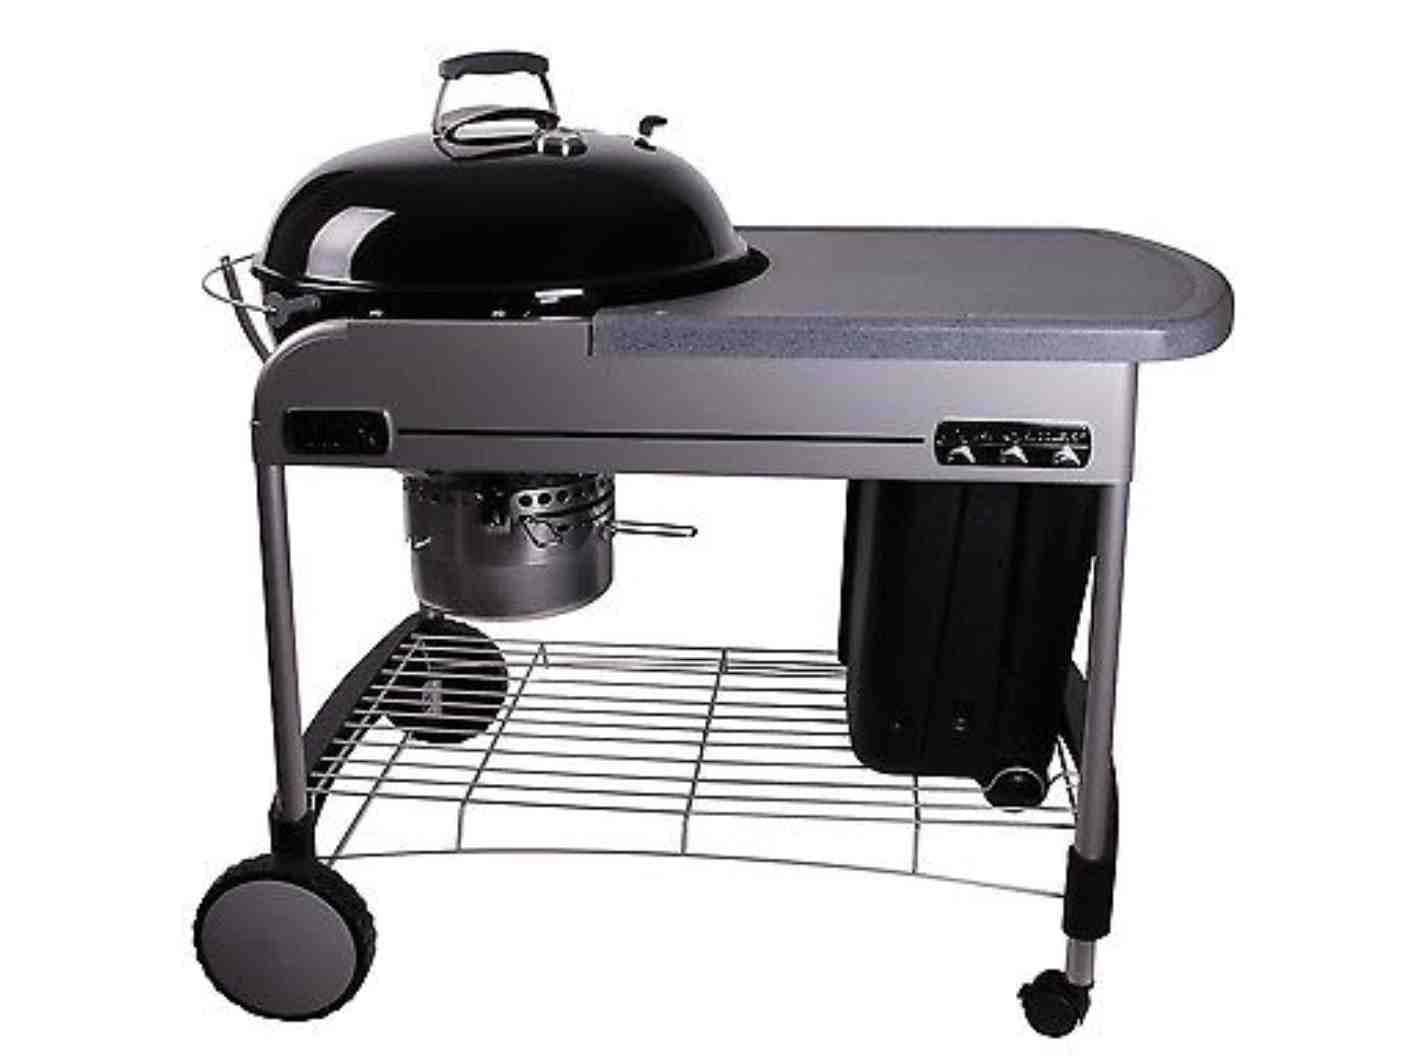 weber grill performer deluxe charcoal grill weber. Black Bedroom Furniture Sets. Home Design Ideas